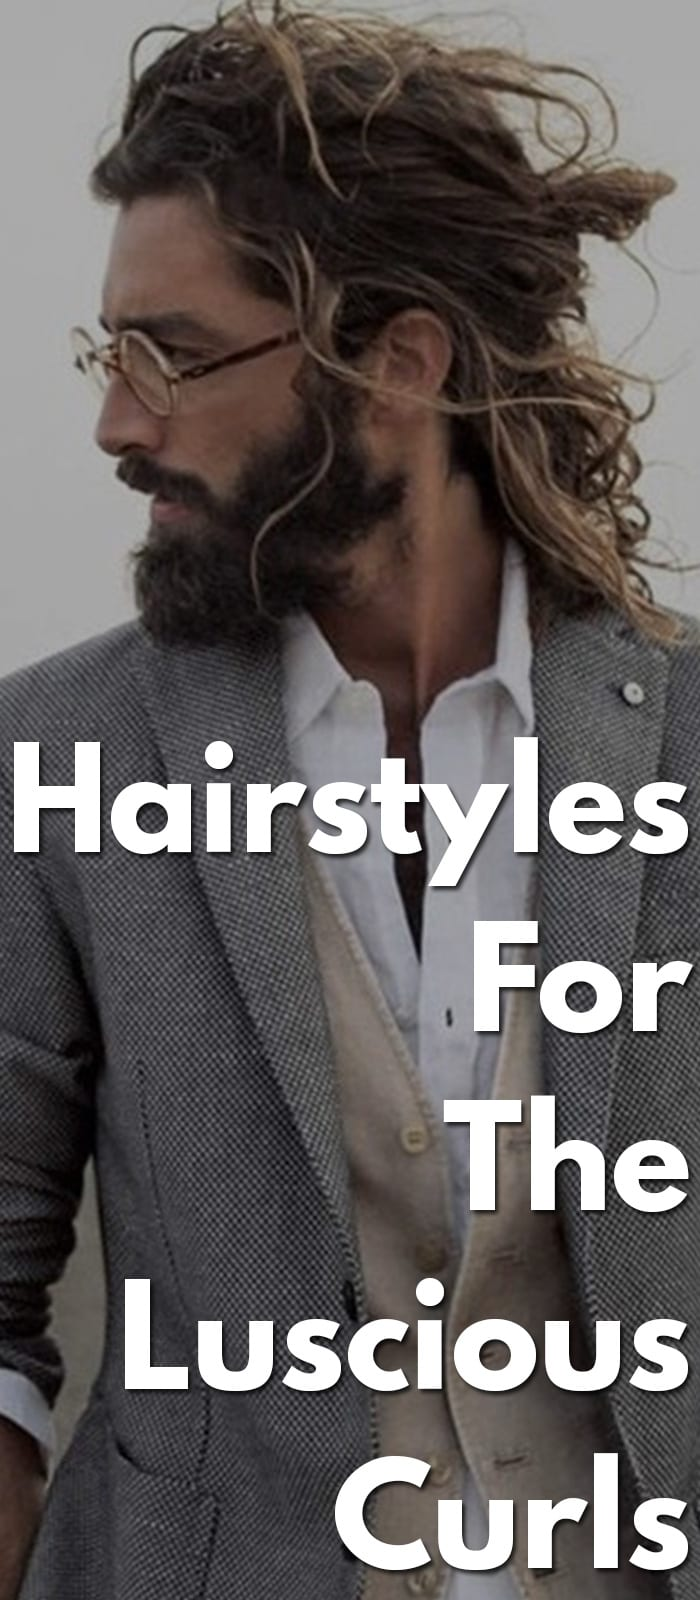 Hairstyles-For-The-Luscious-Curls.